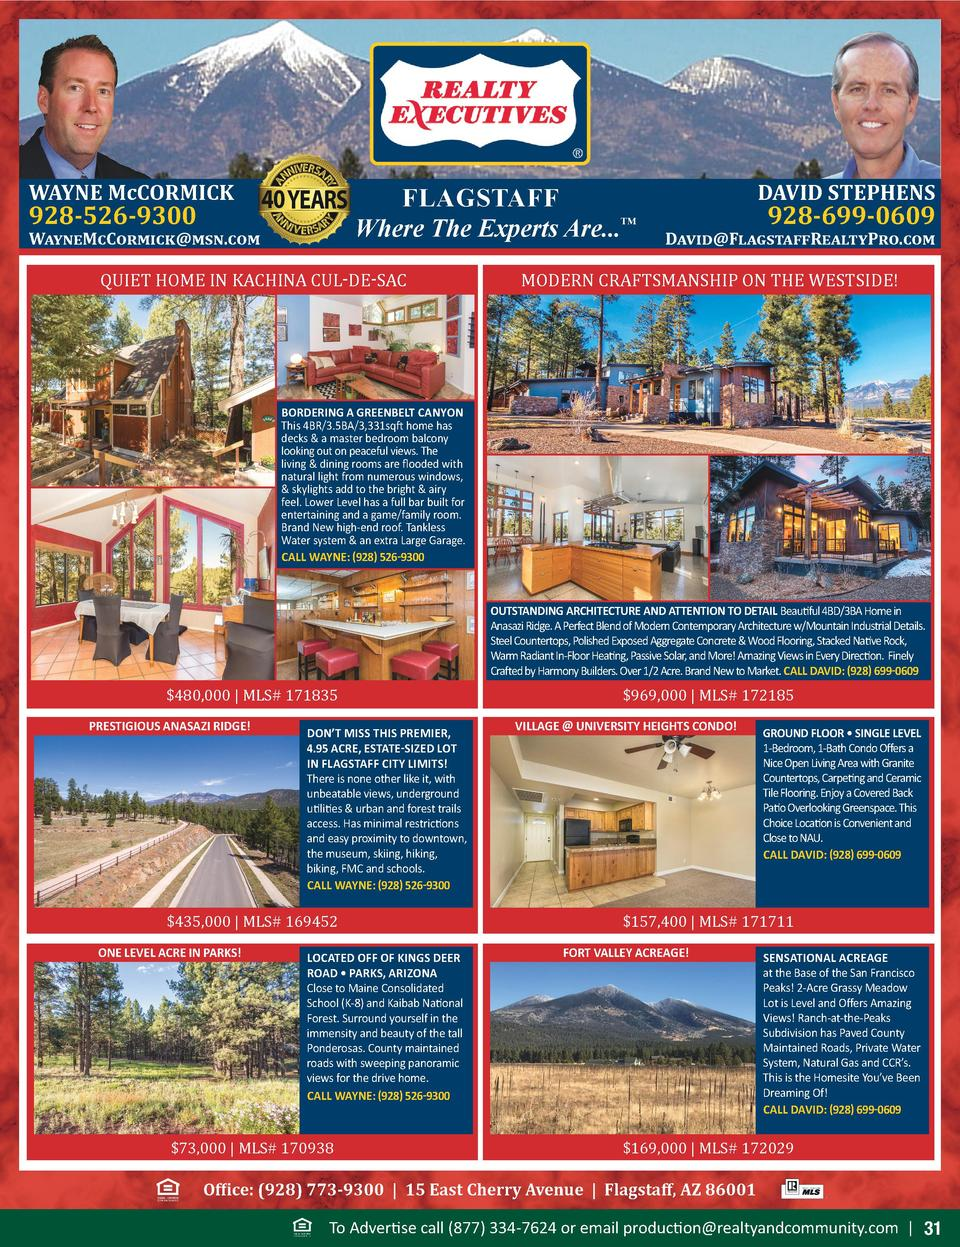 WAYNE McCORMICK  FLAGSTAFF Where The Experts Are...     928-526-9300  WayneMcCormick msn.com  QUIET HOME IN KACHINA CUL-DE...